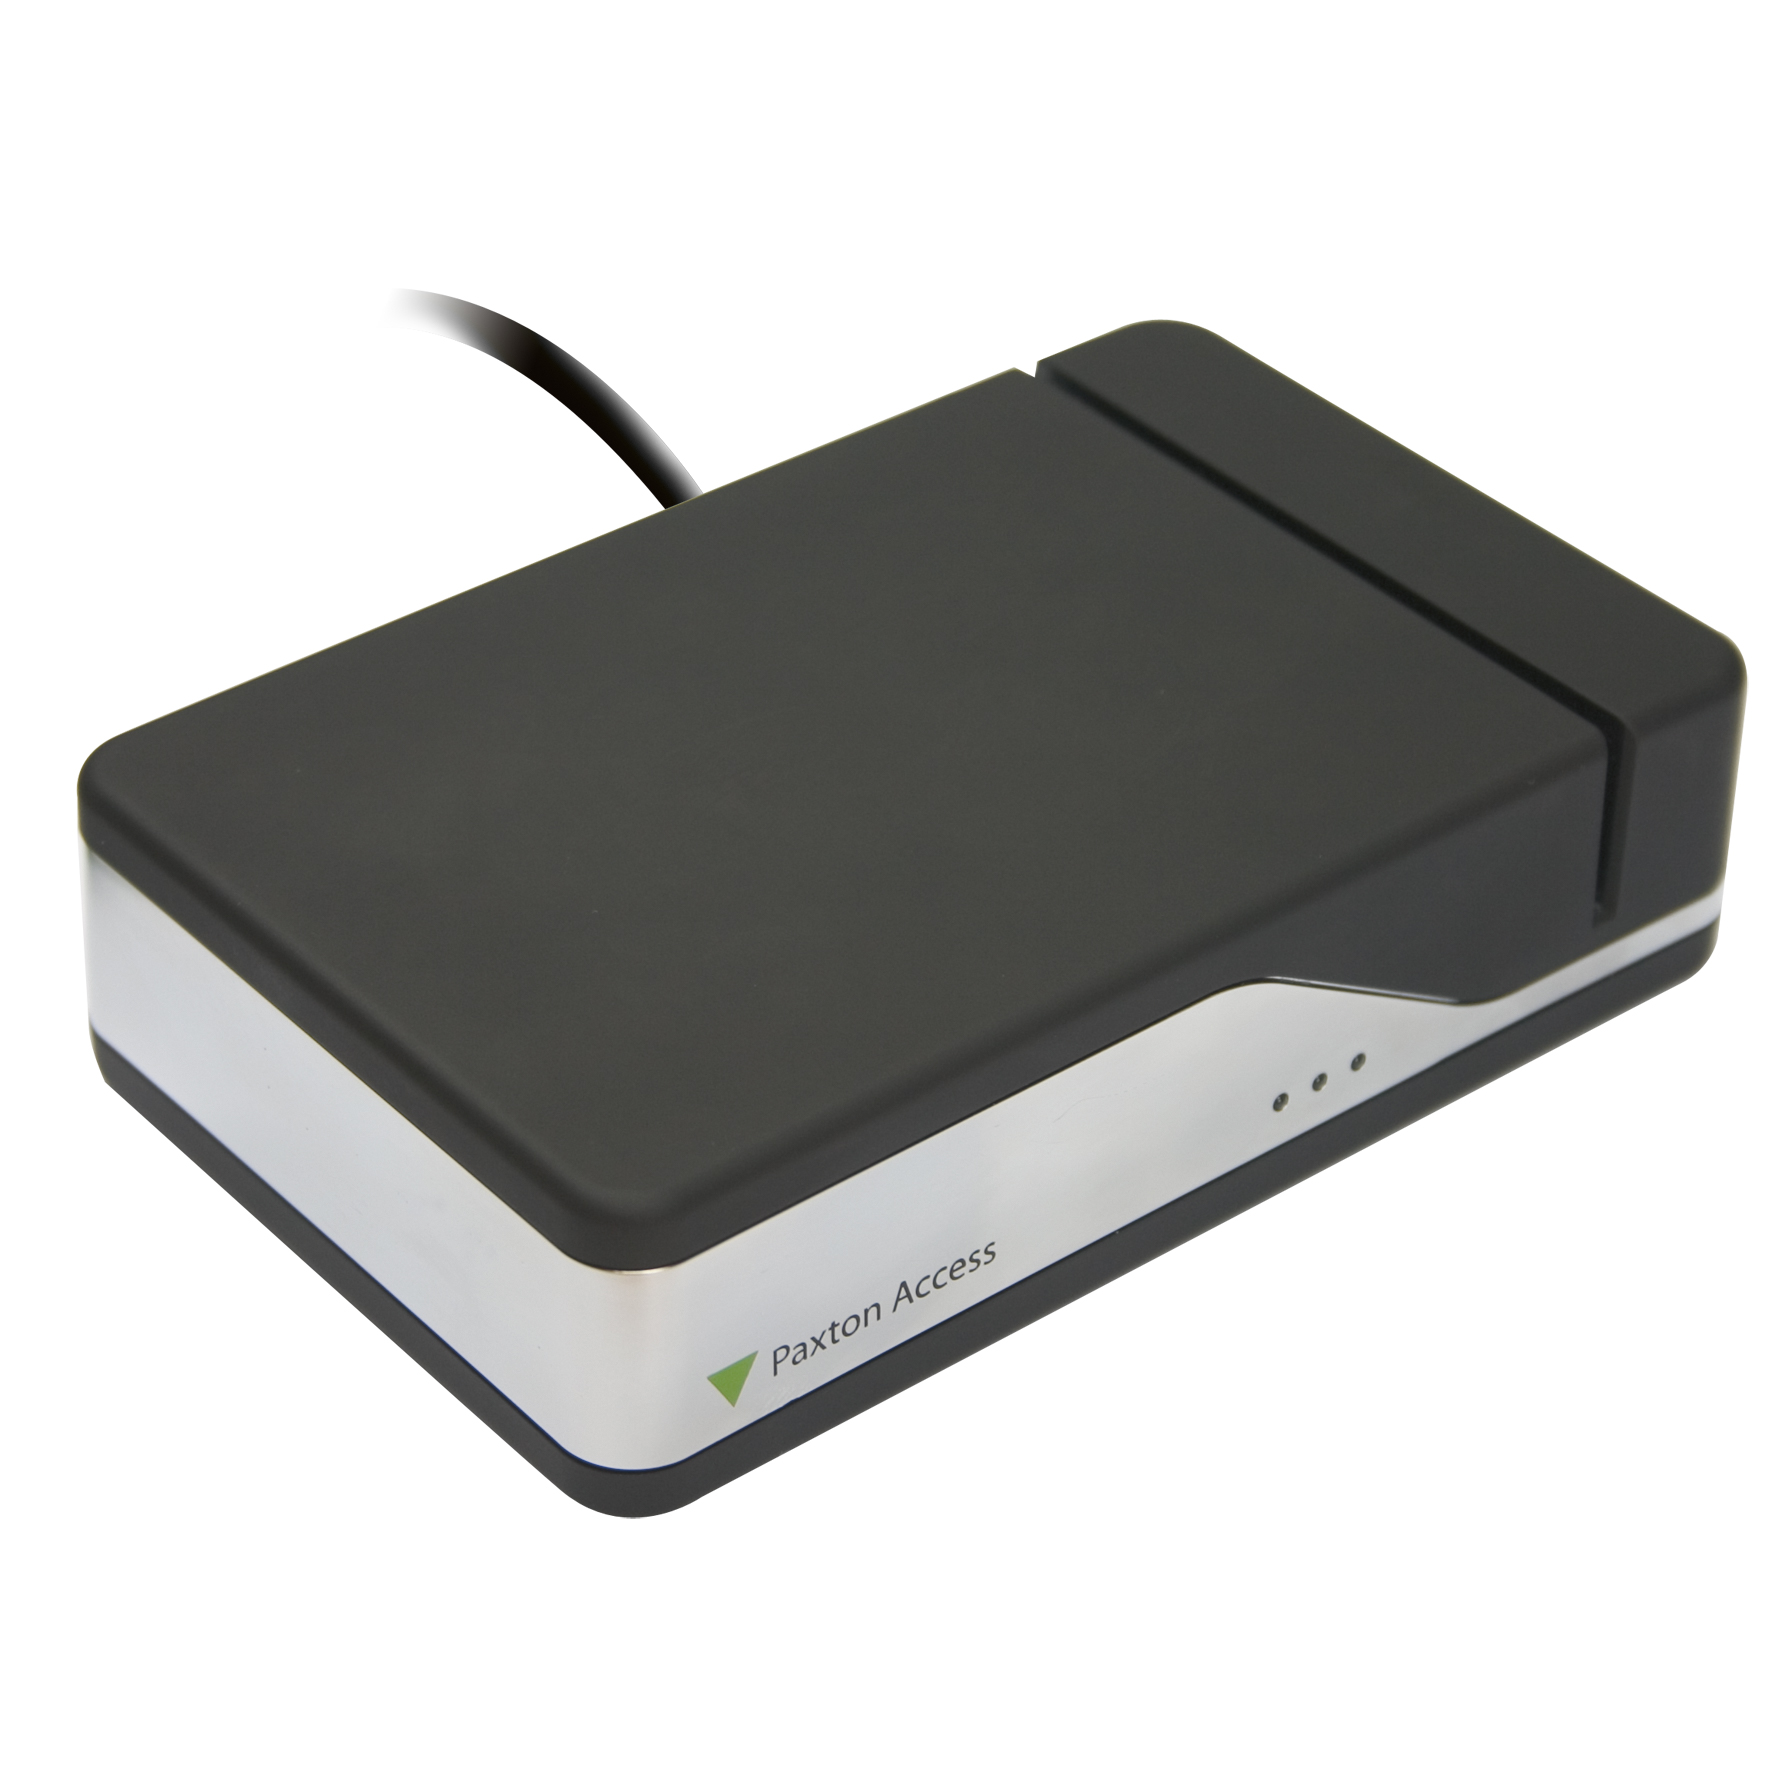 Net2 desktop reader - Proximity and magstripe